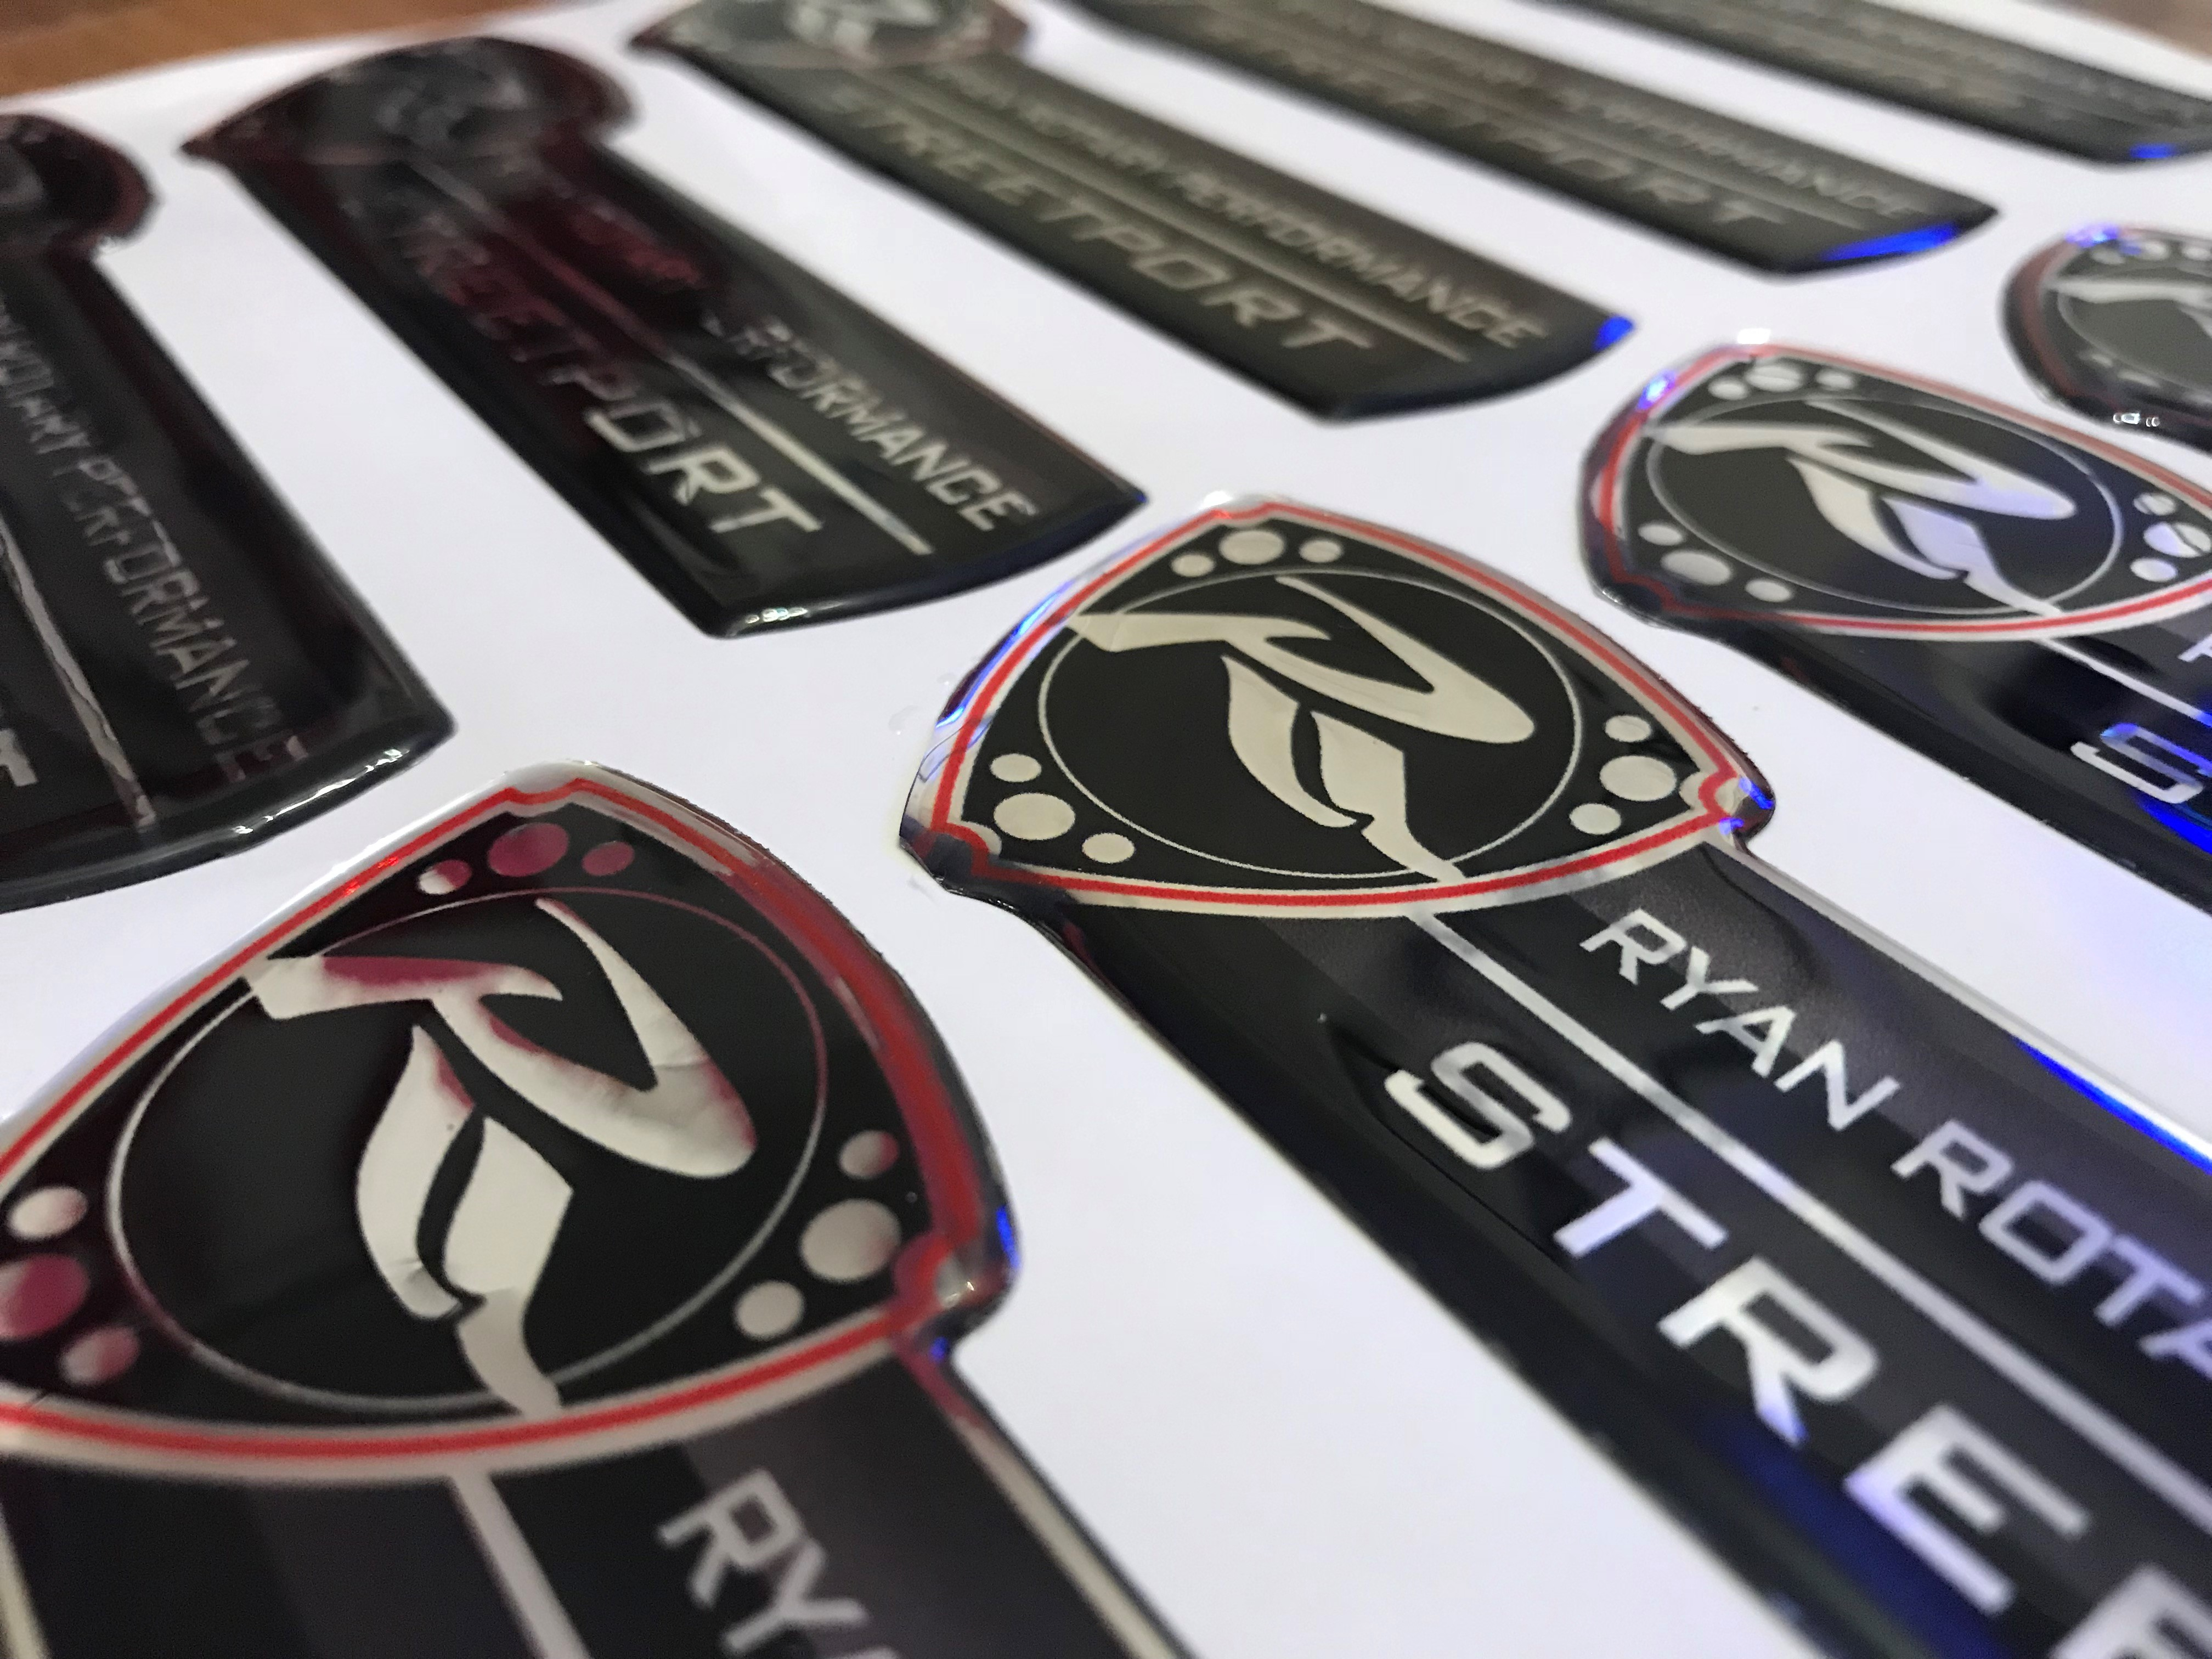 Rrp decal stickers